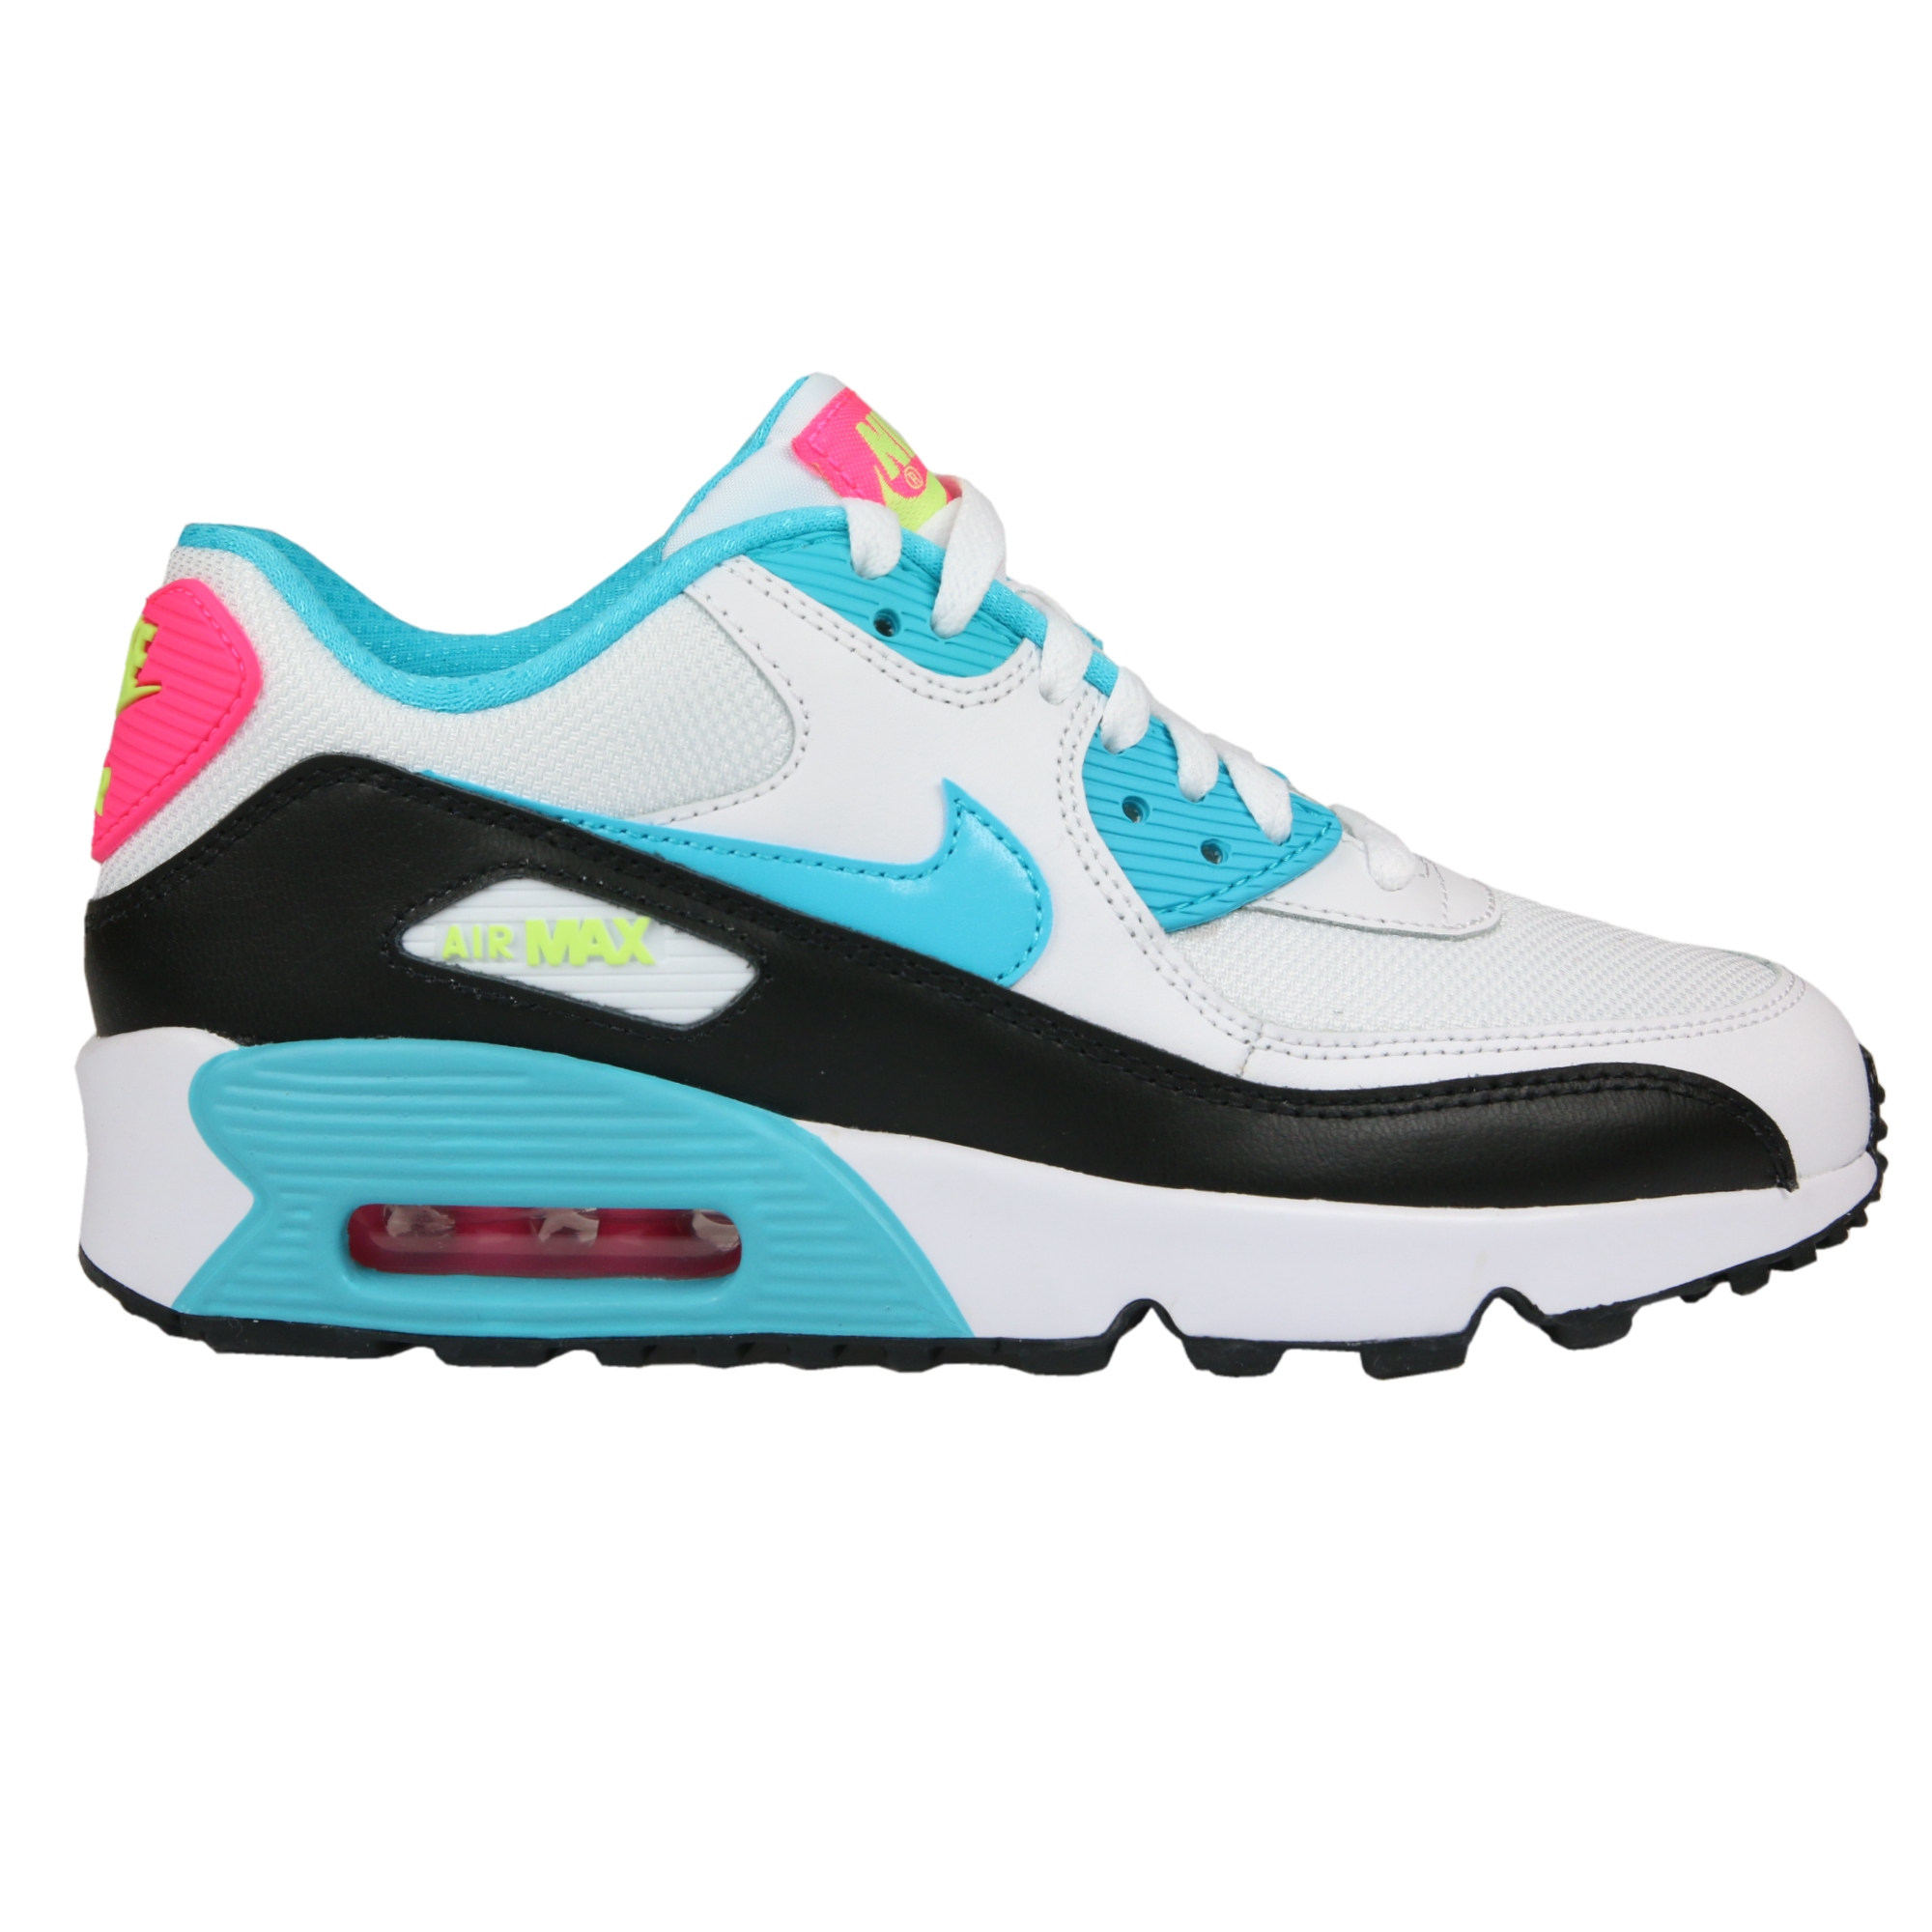 nike air max 90 gs schuhe turnschuhe sneaker damen kinder. Black Bedroom Furniture Sets. Home Design Ideas